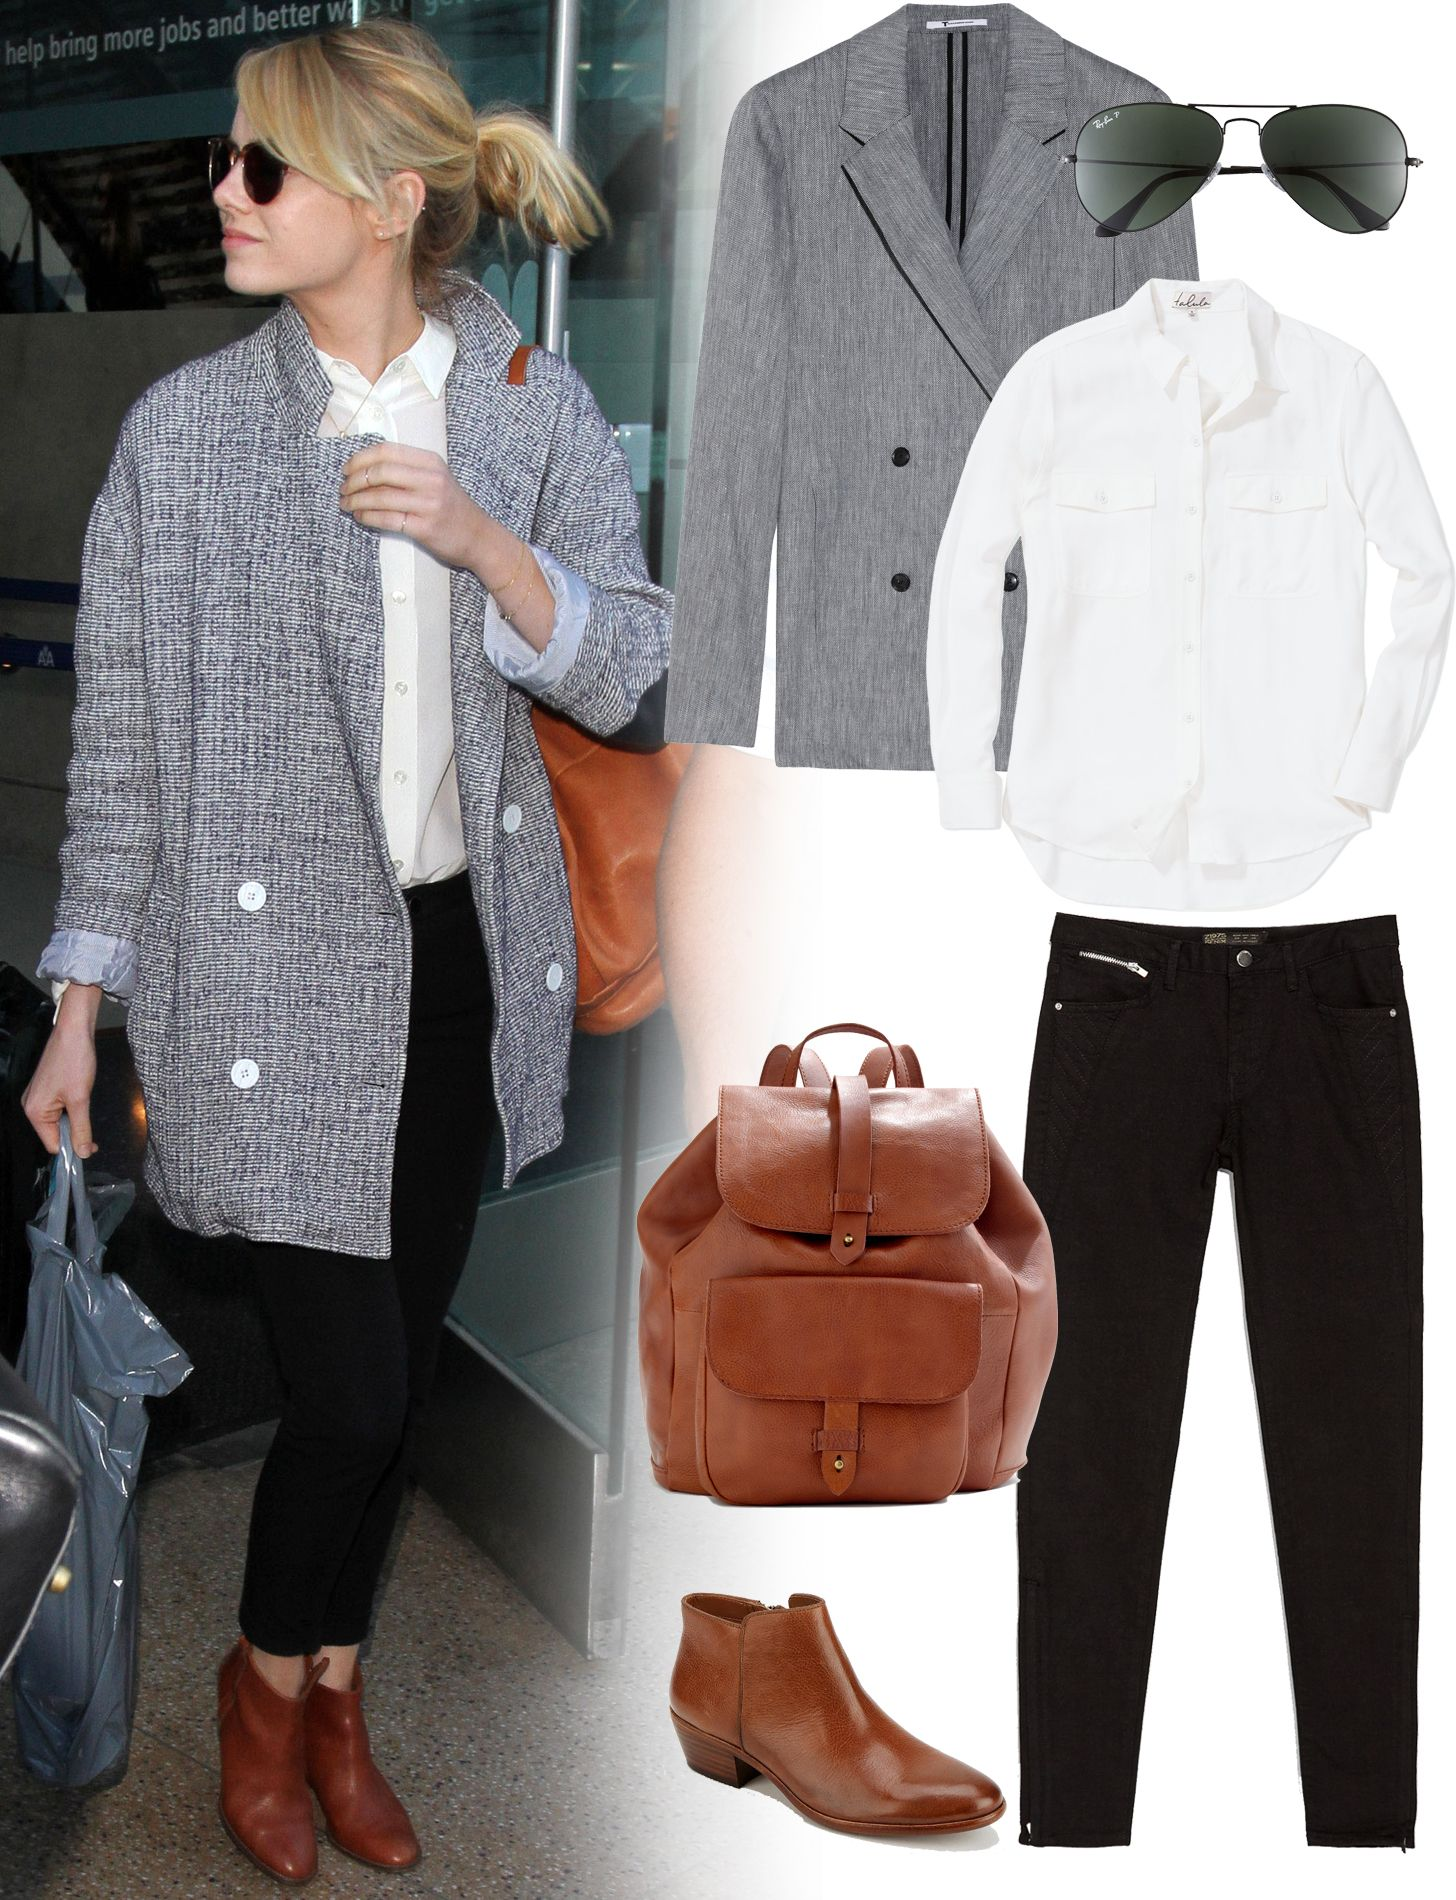 46724a9171c6 Emma Stone s carrying a  Madewell backpack we re obsessed with (buy it  here